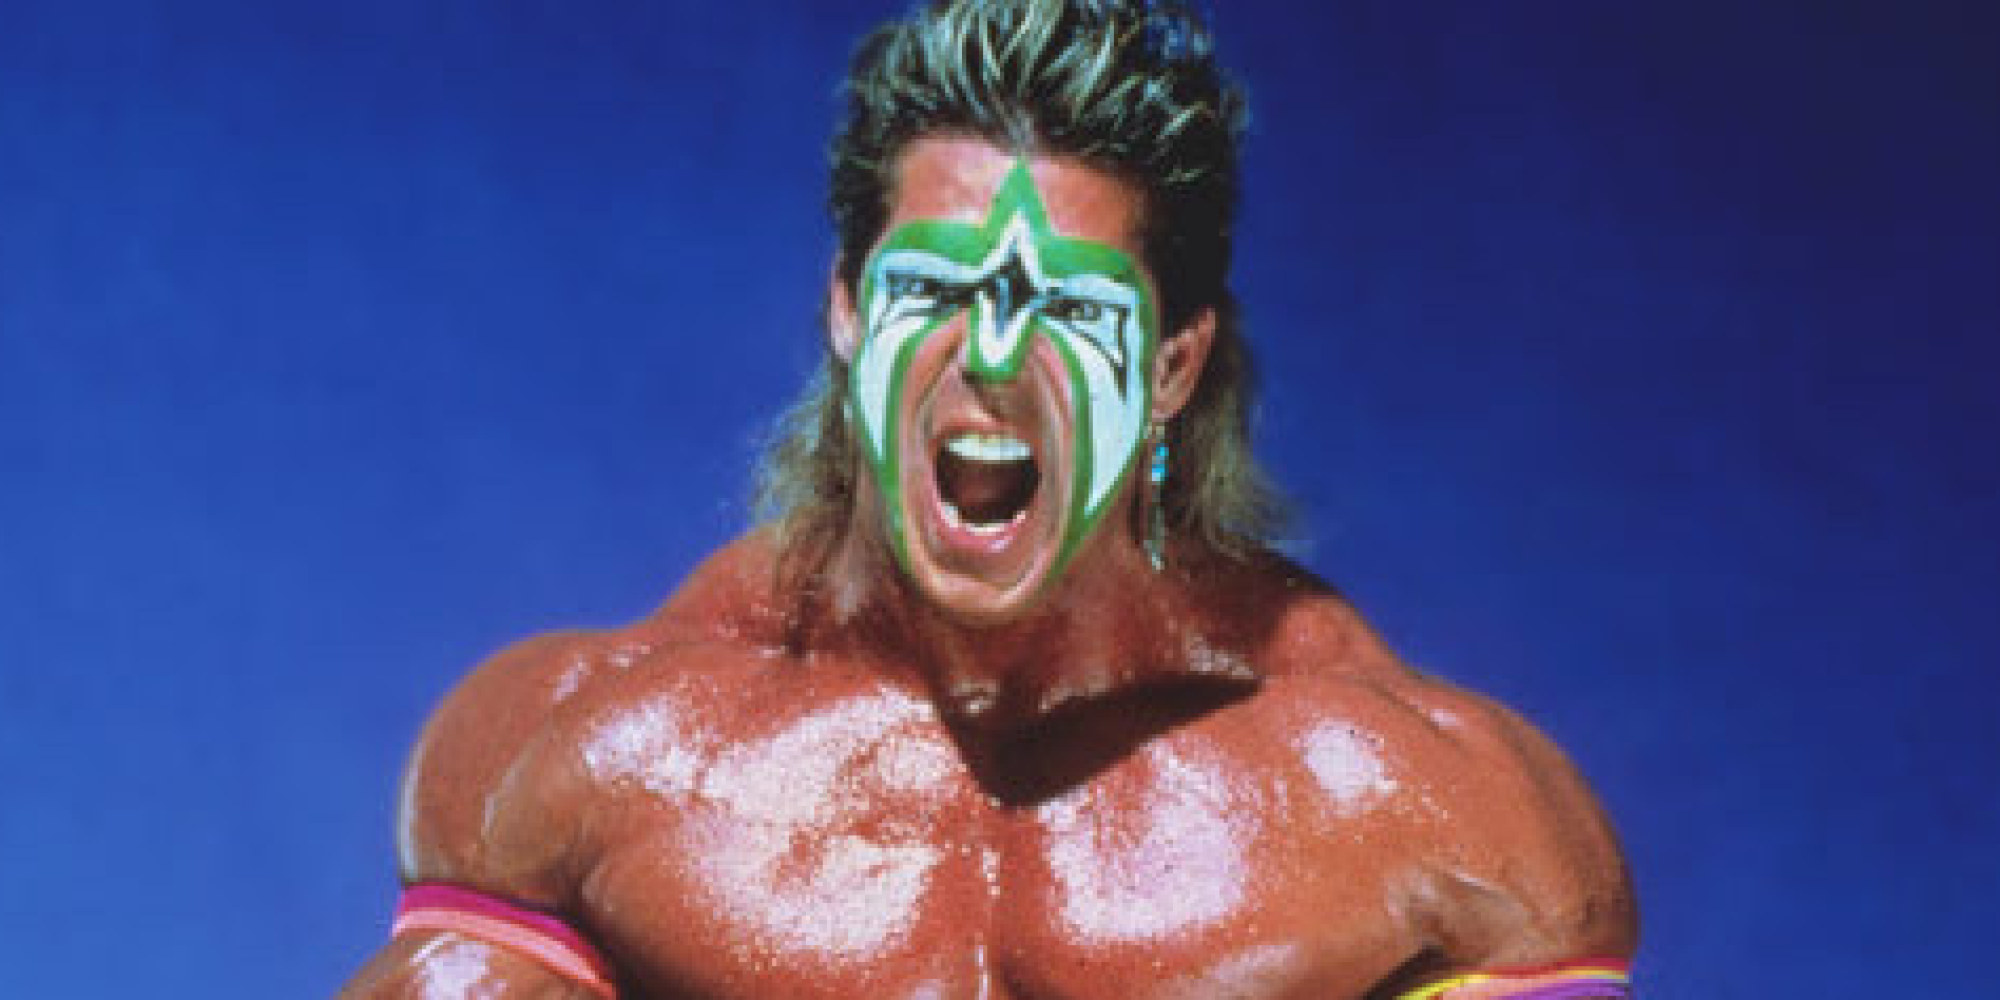 Http Www Huffingtonpost Ca 2014 04 09 Ultimate Warrior Rip James Hellwig N 5117792 Html